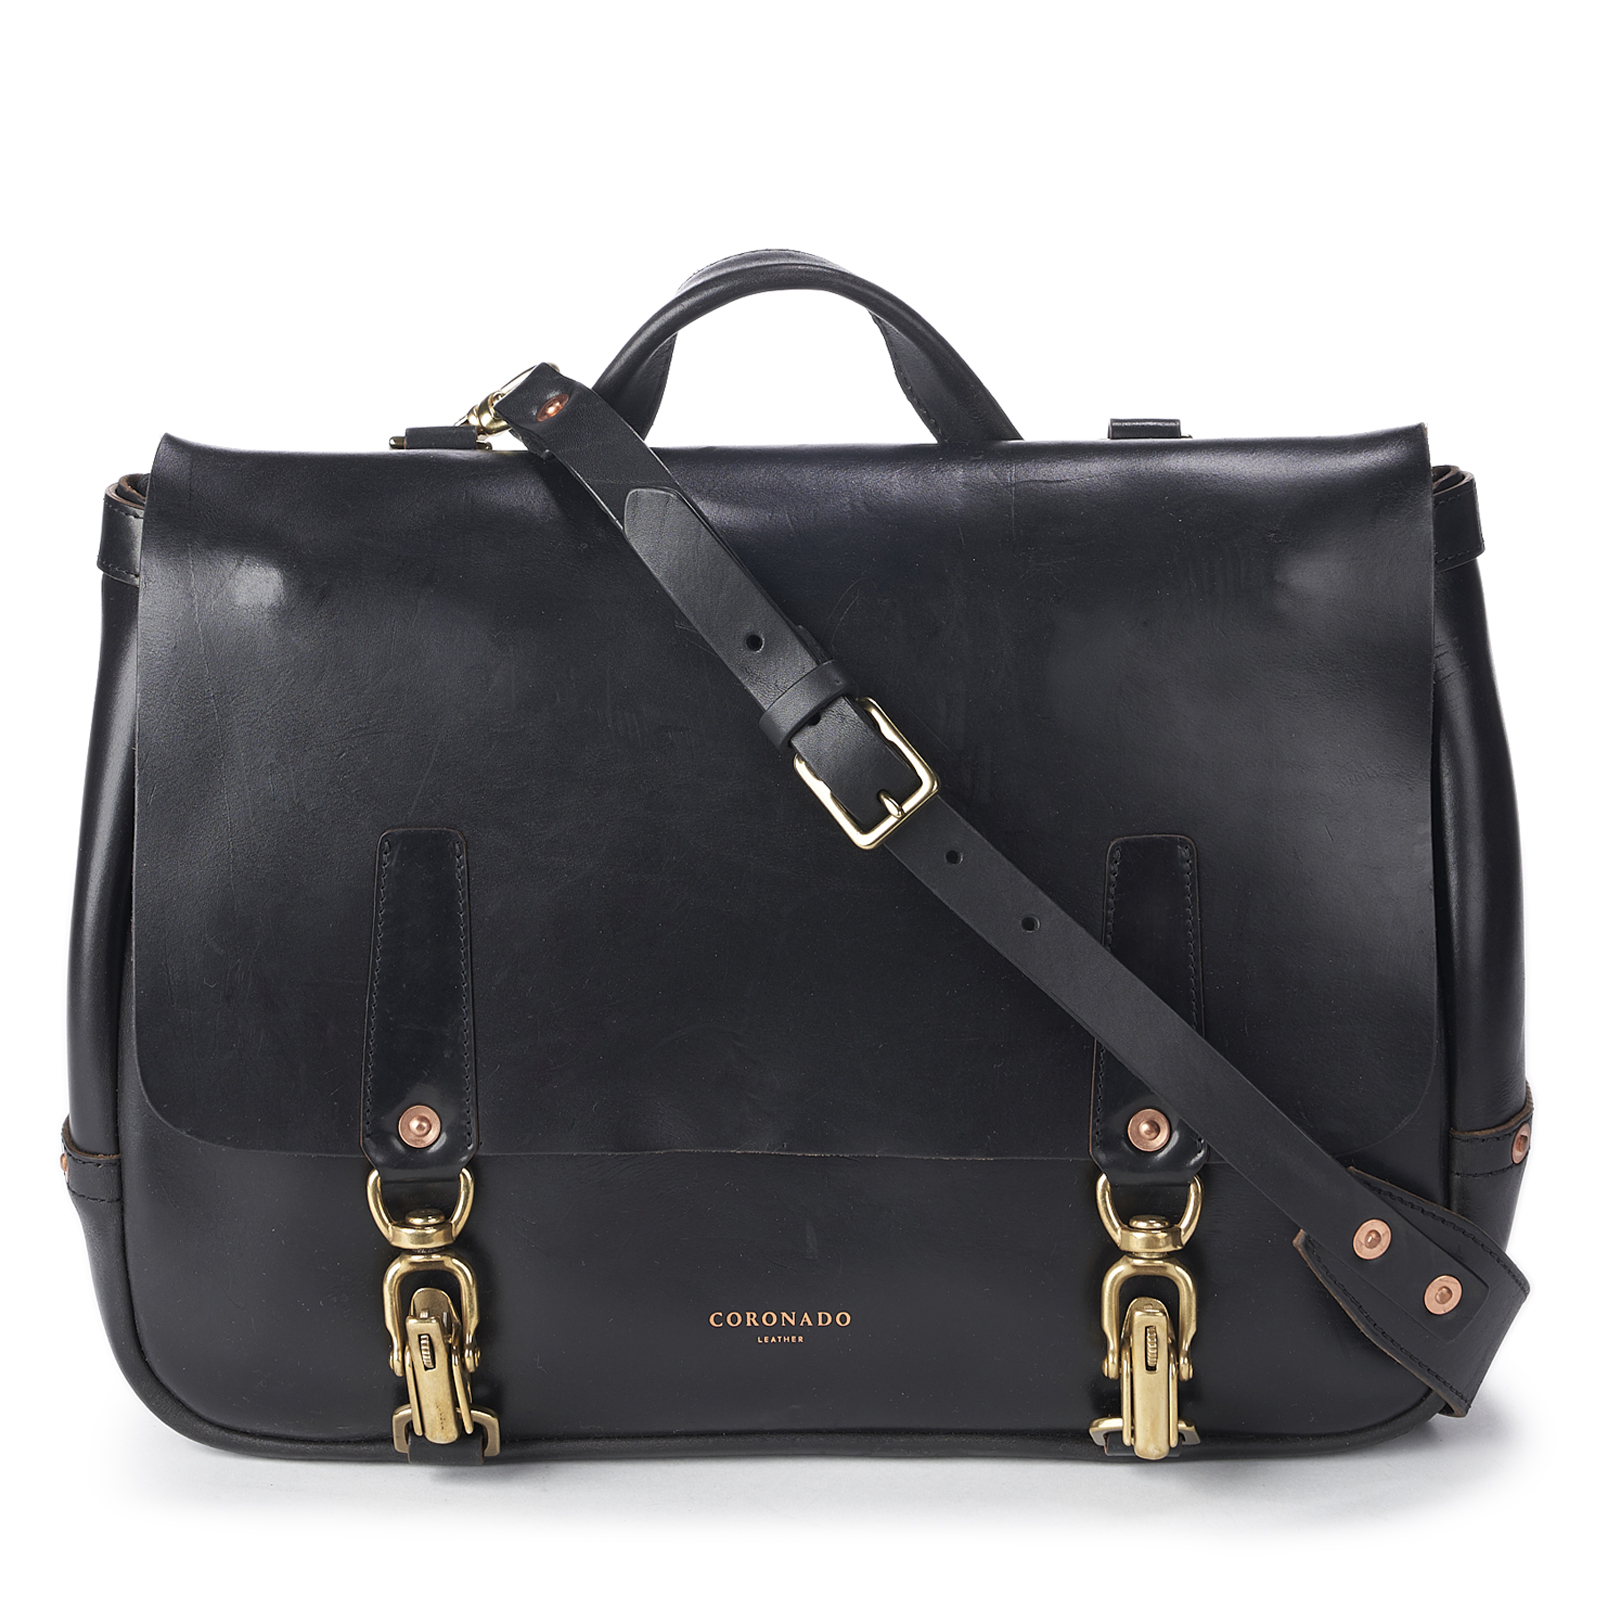 Chicago Mail Bag No. 721 (Black)